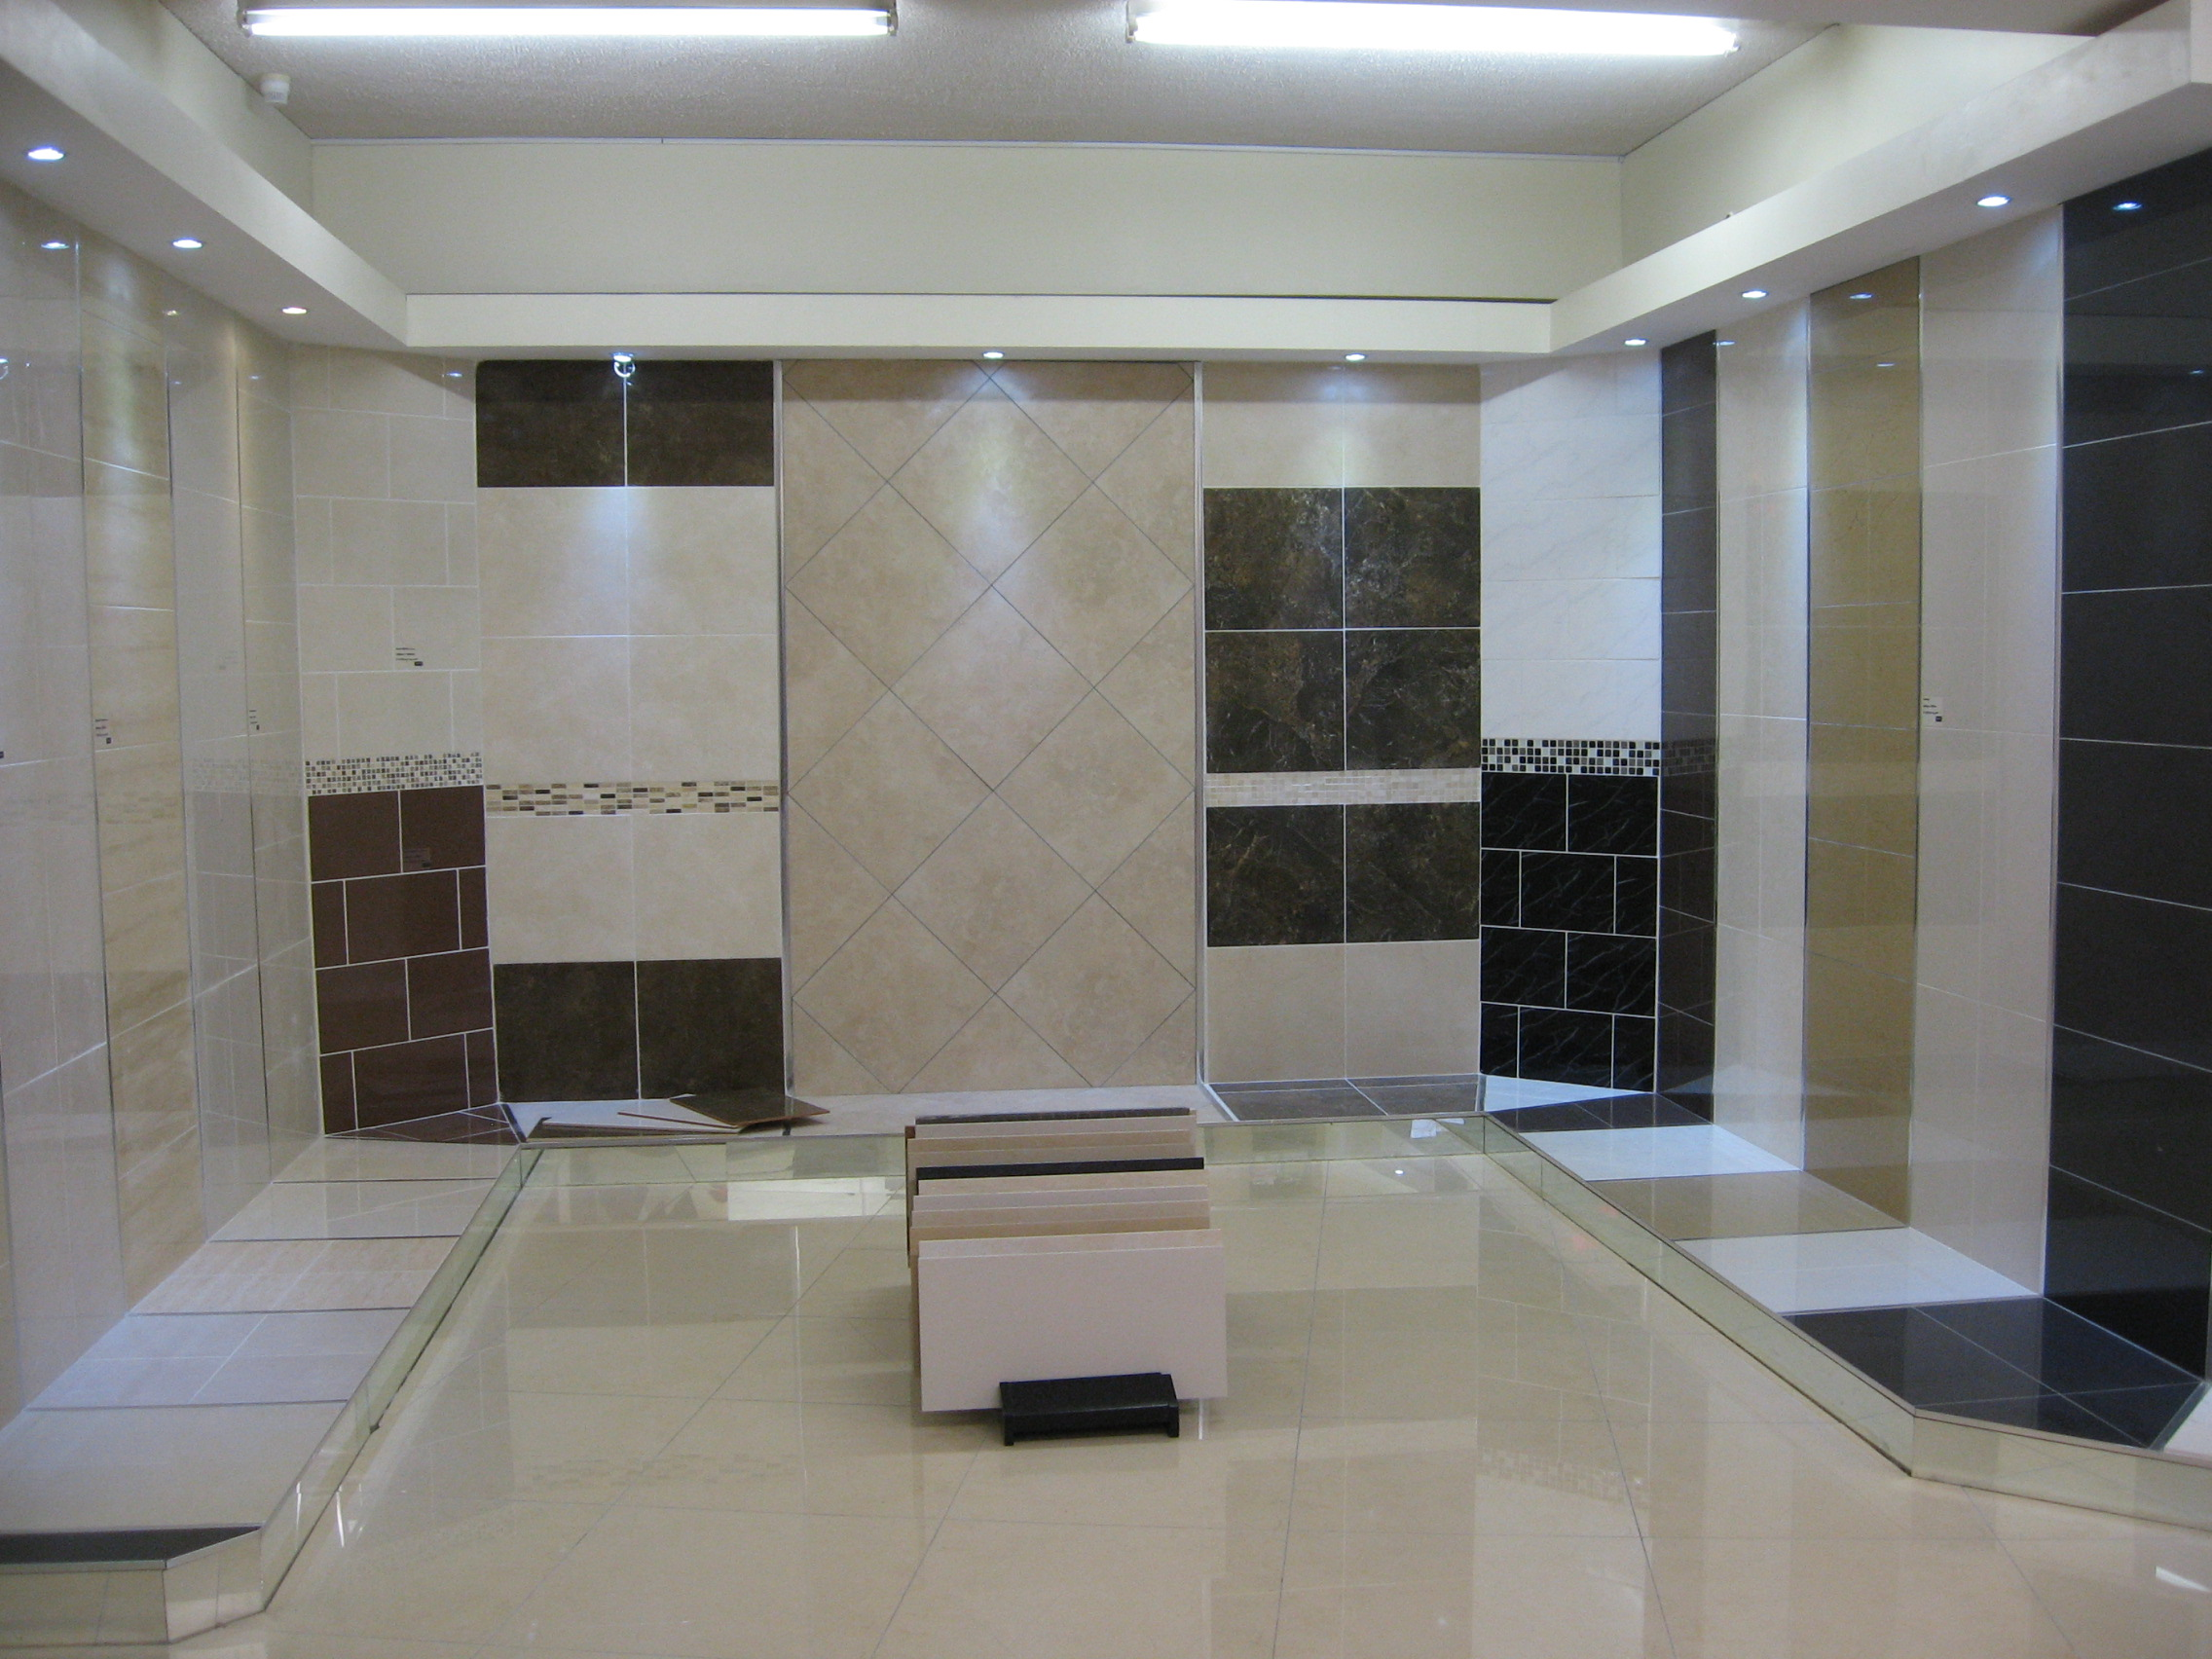 Amazing Tile Showroom Display Designs 2272 x 1704 · 888 kB · jpeg